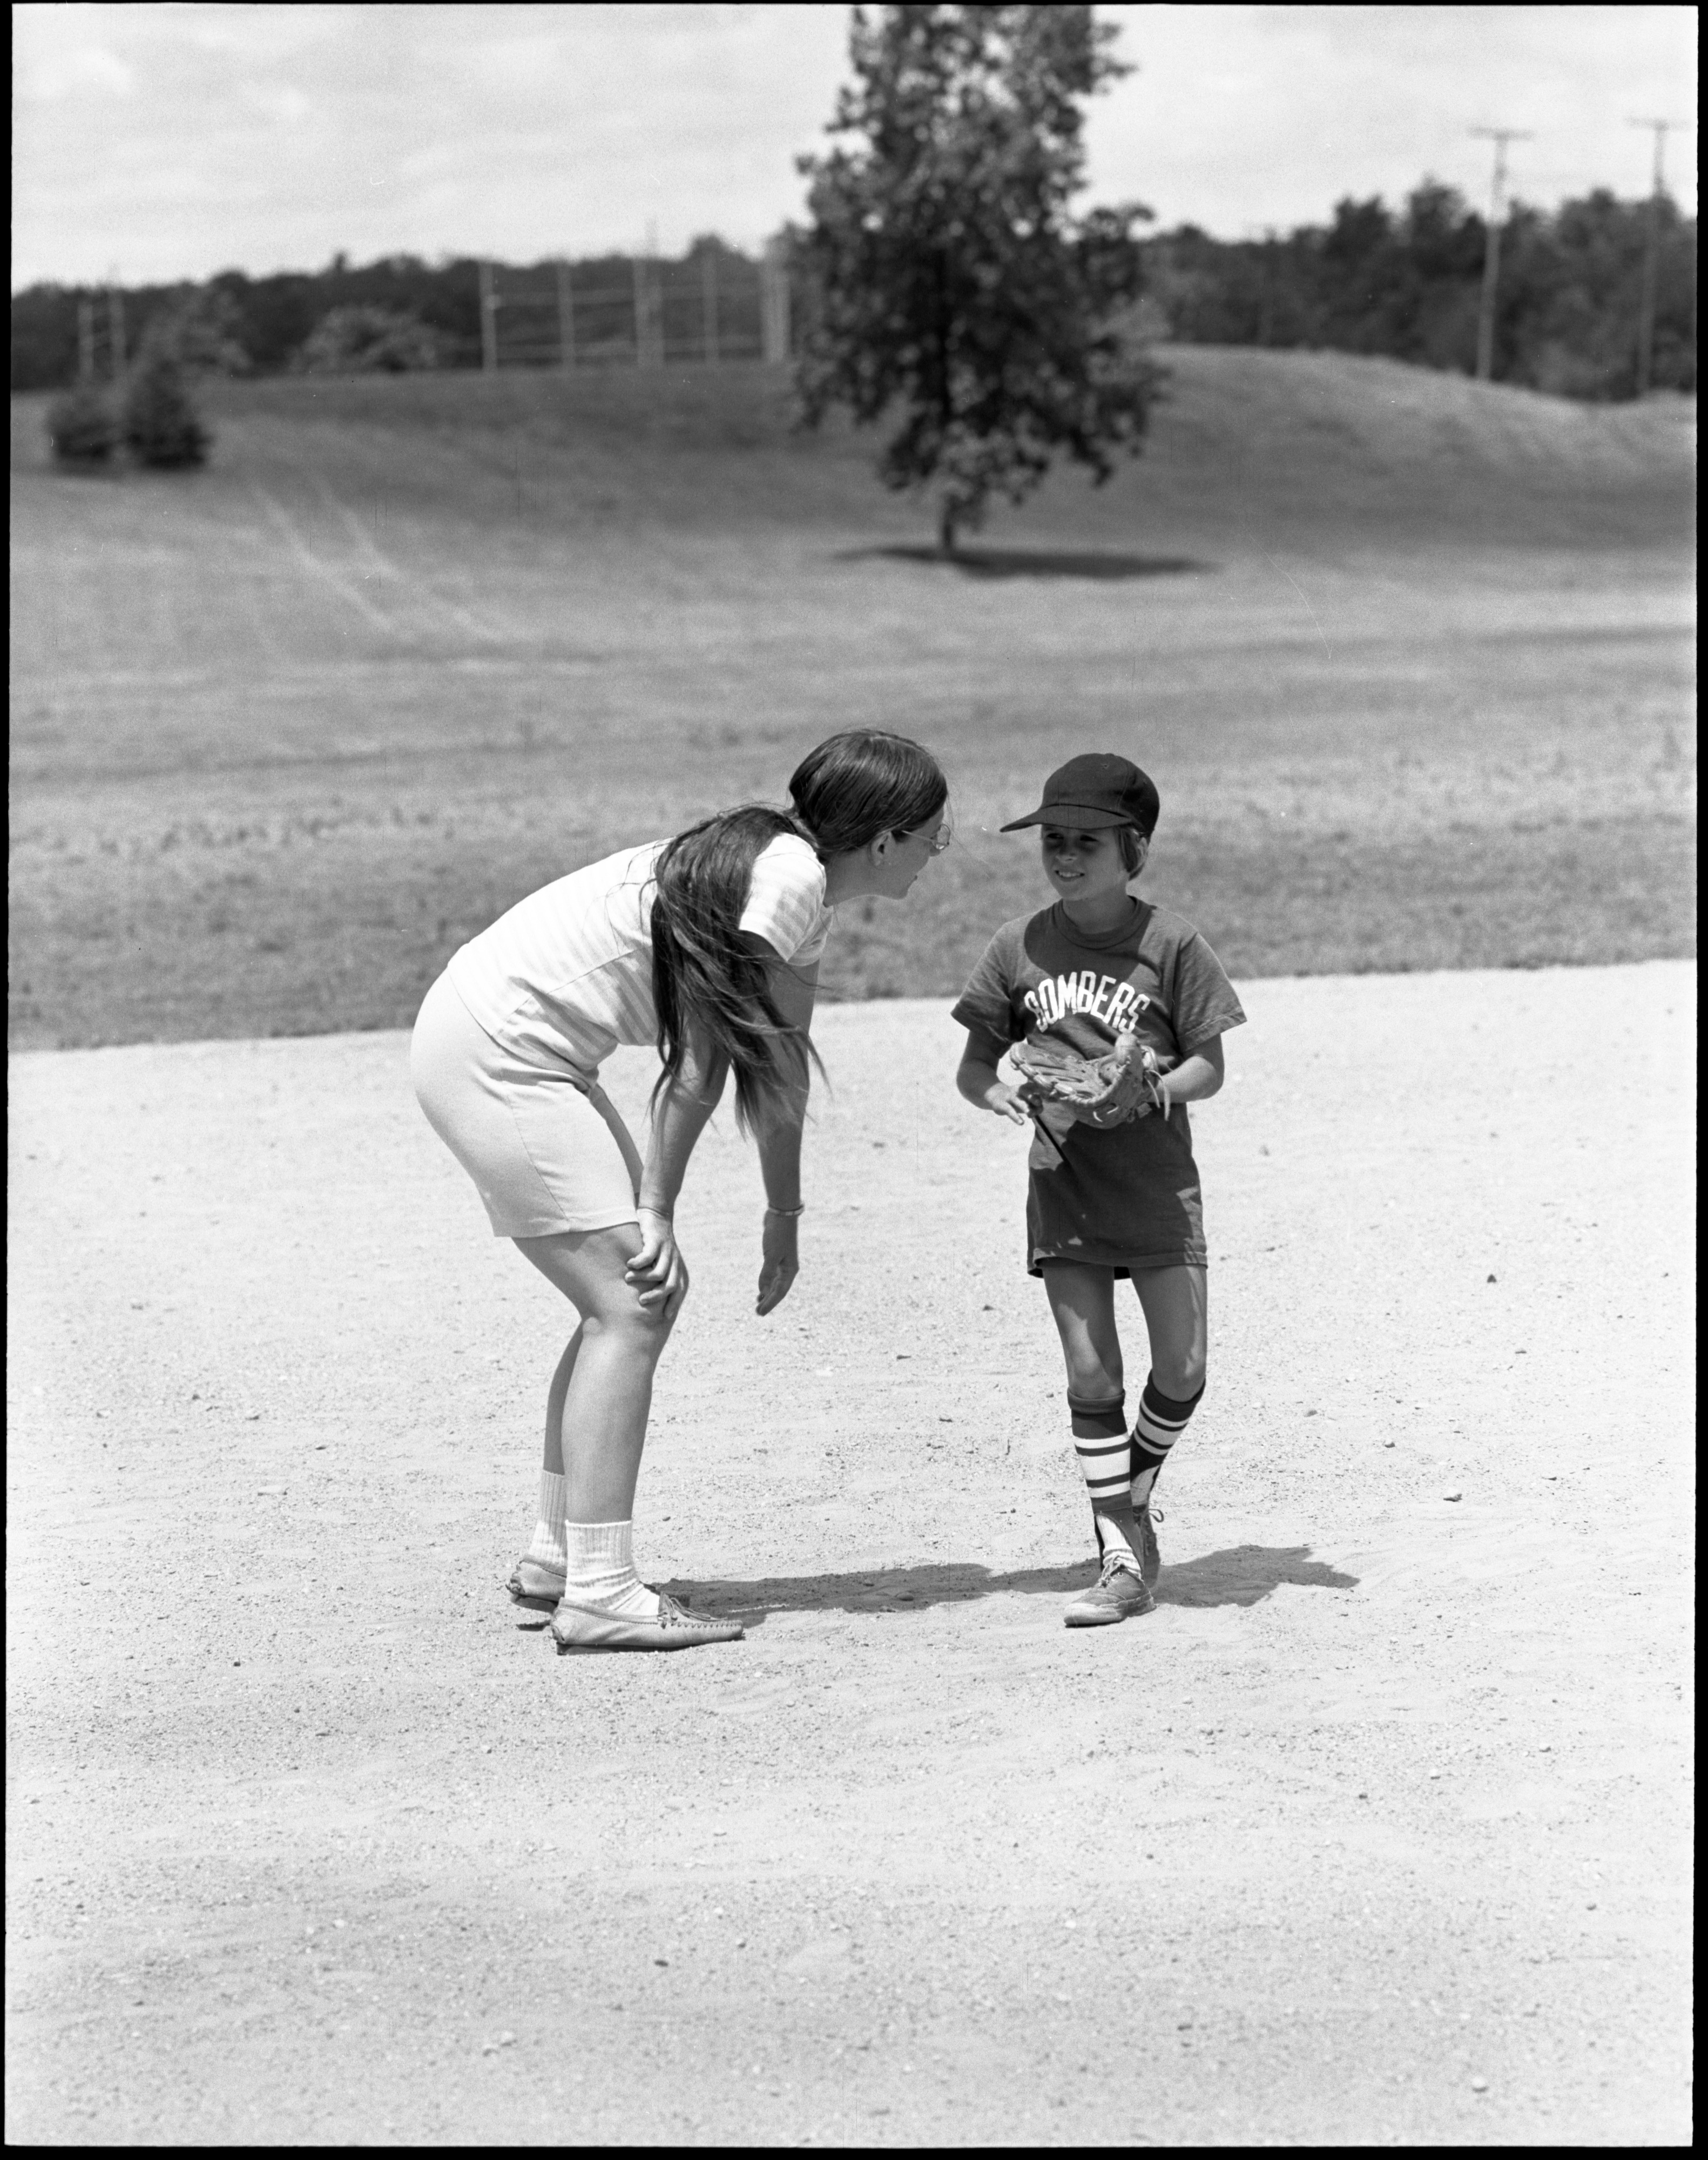 Girls Softball - Karen & Sloane Staples Chat On The Pitcher's Mound, July 1972 image